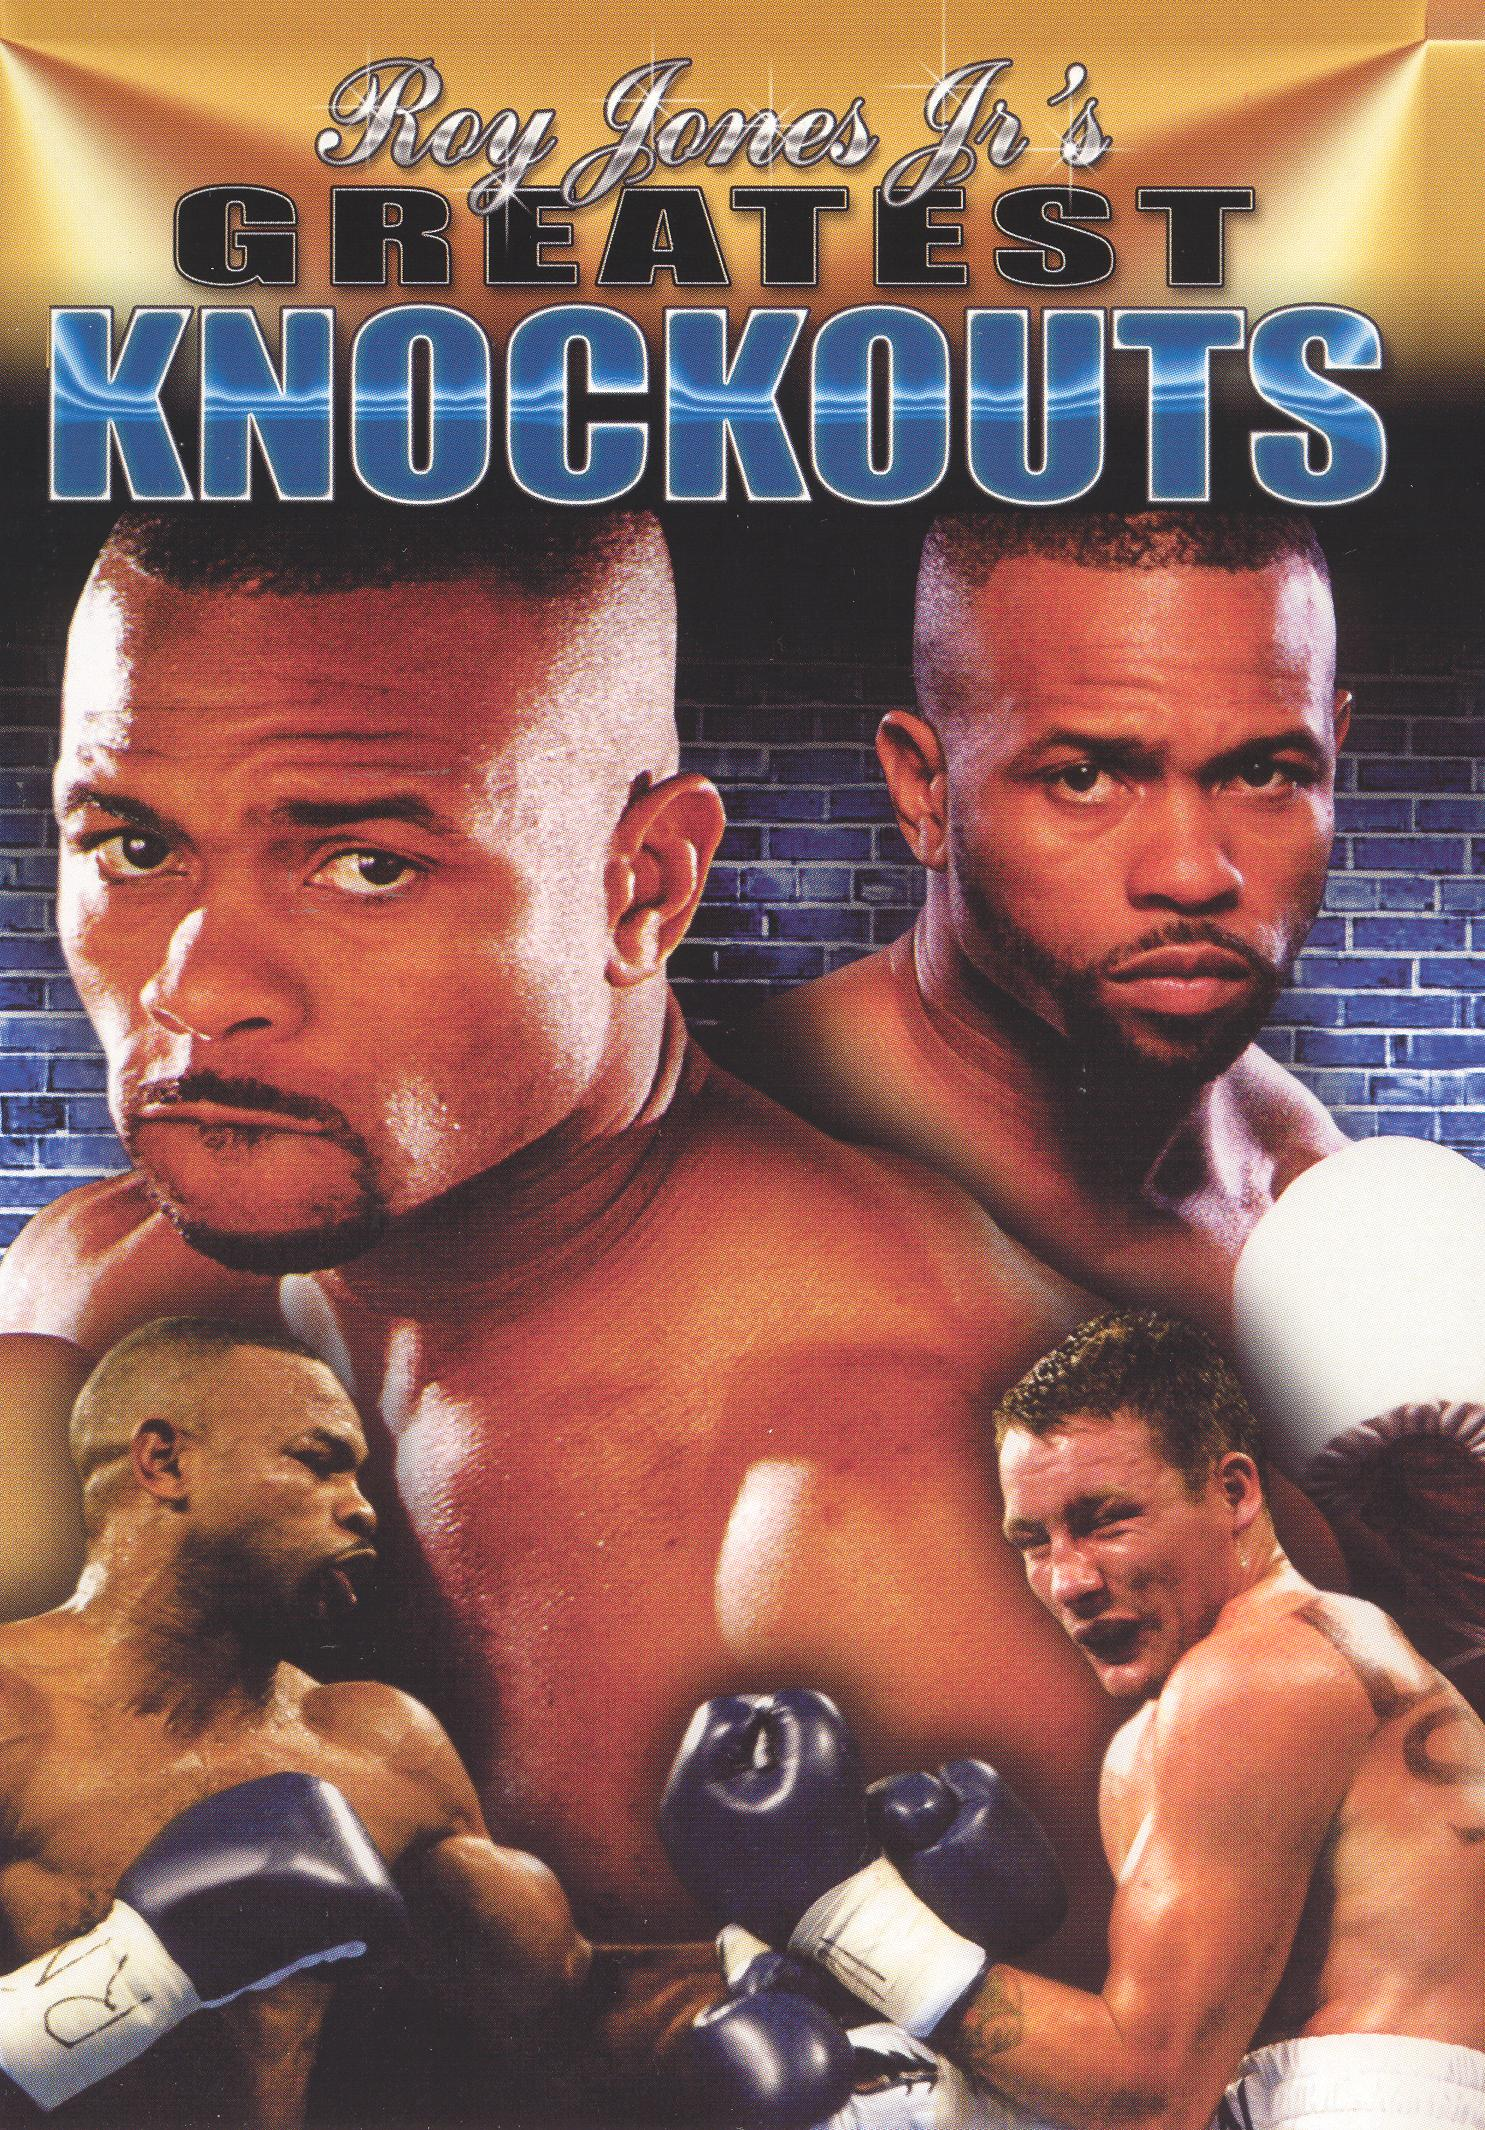 Roy Jones, Jr.'s Greatest Knockouts